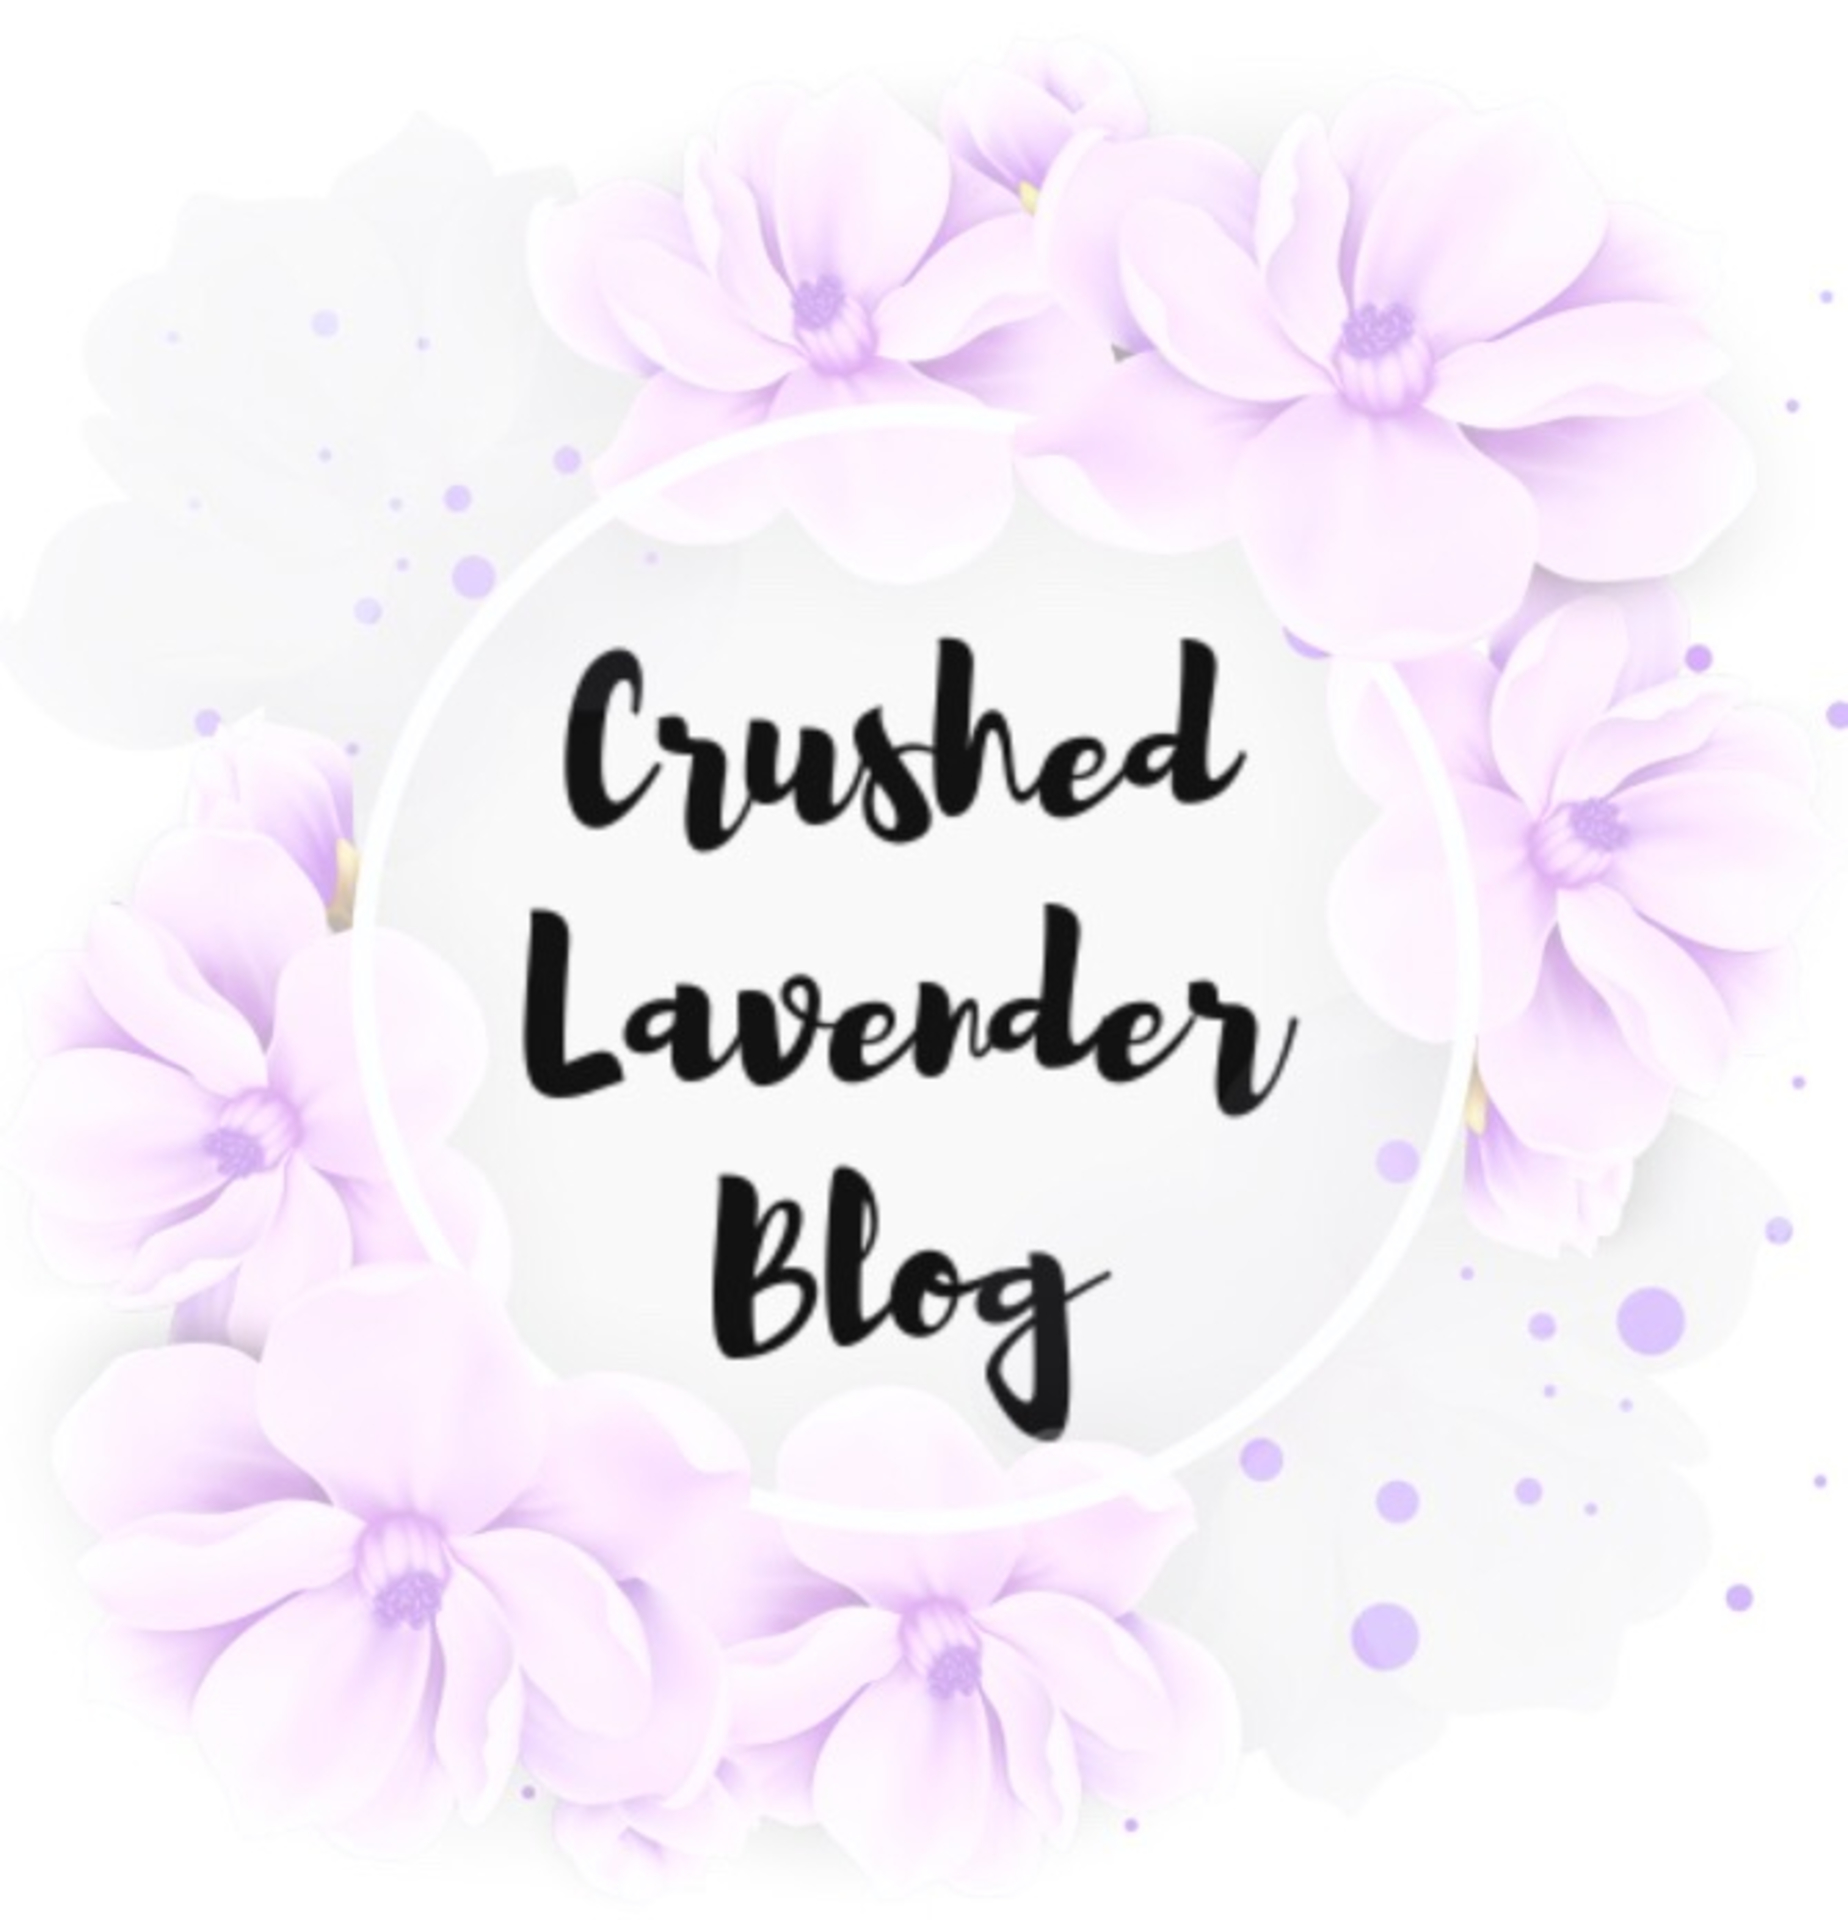 My Blogging Journey- Crushed Lavender Blog image